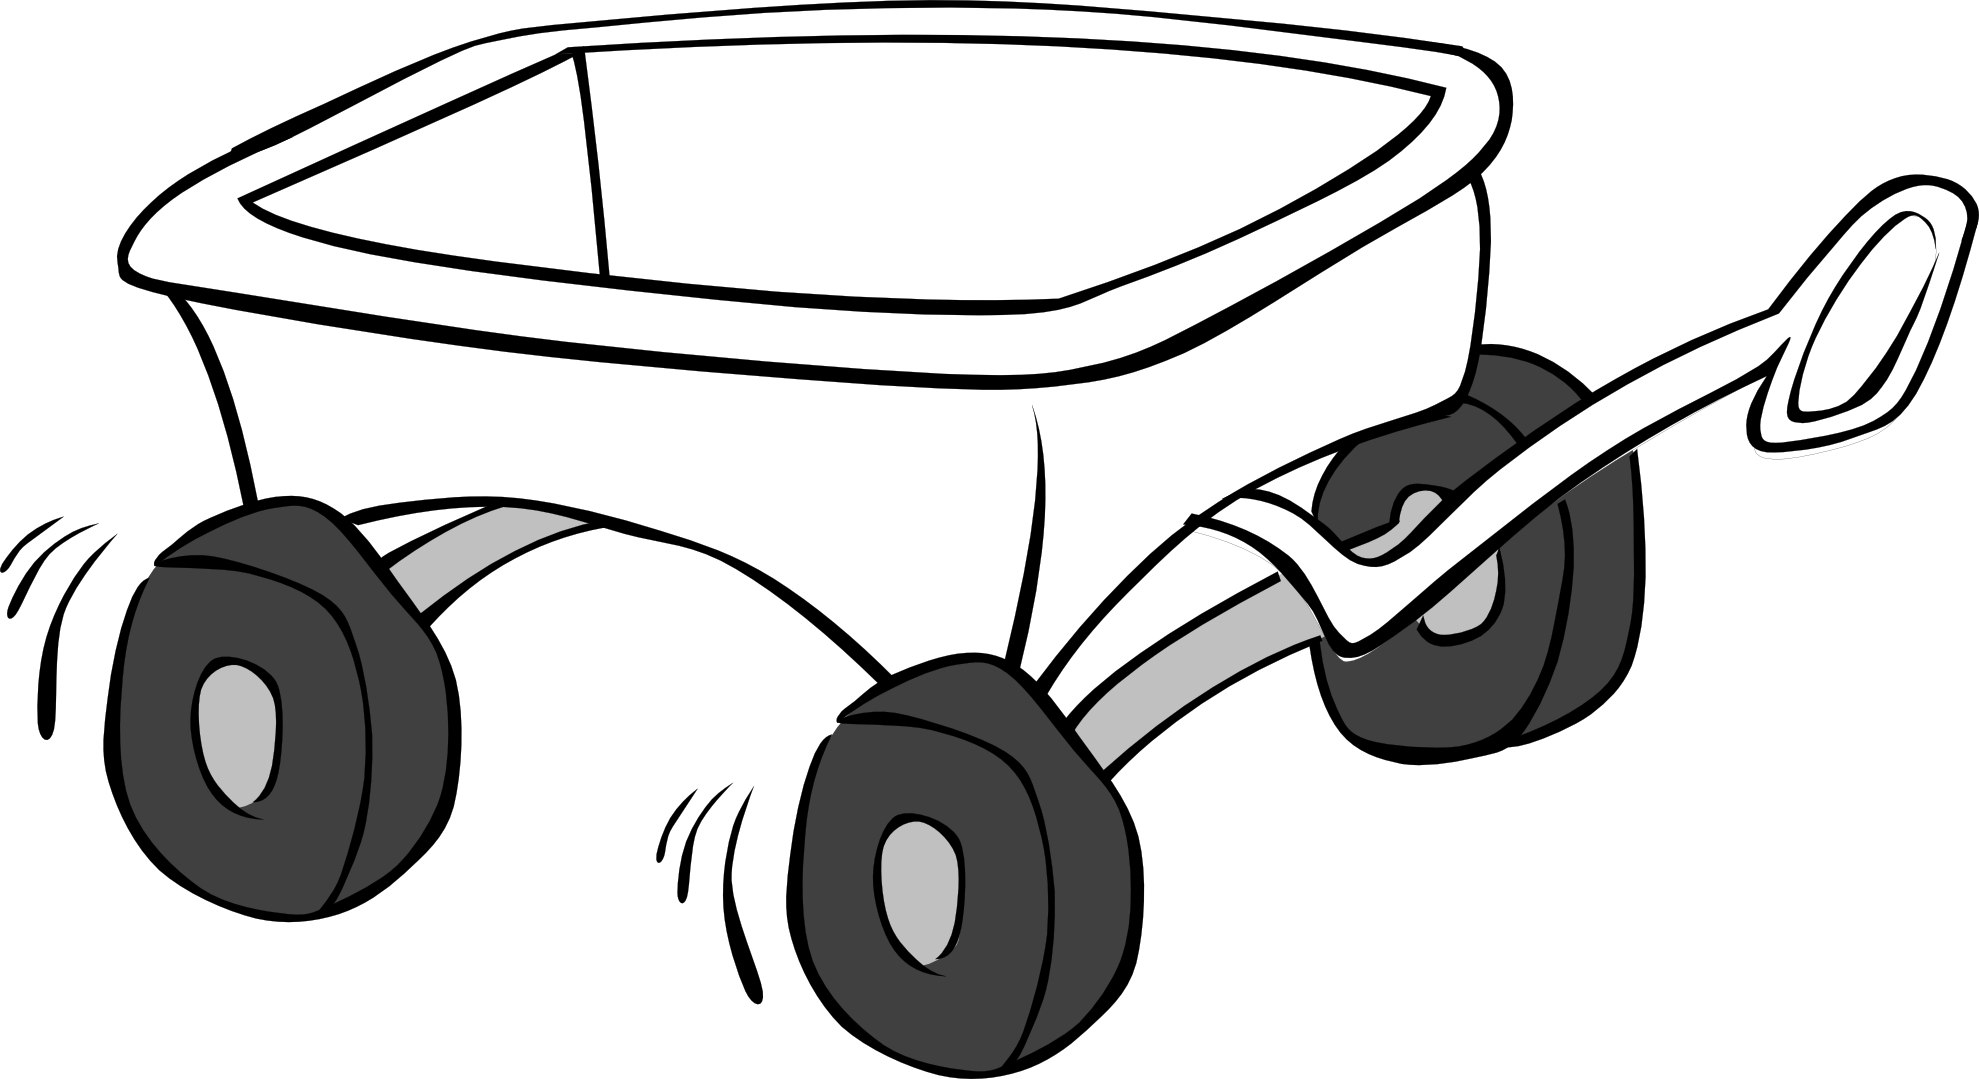 Wagon clipart. Black and white panda